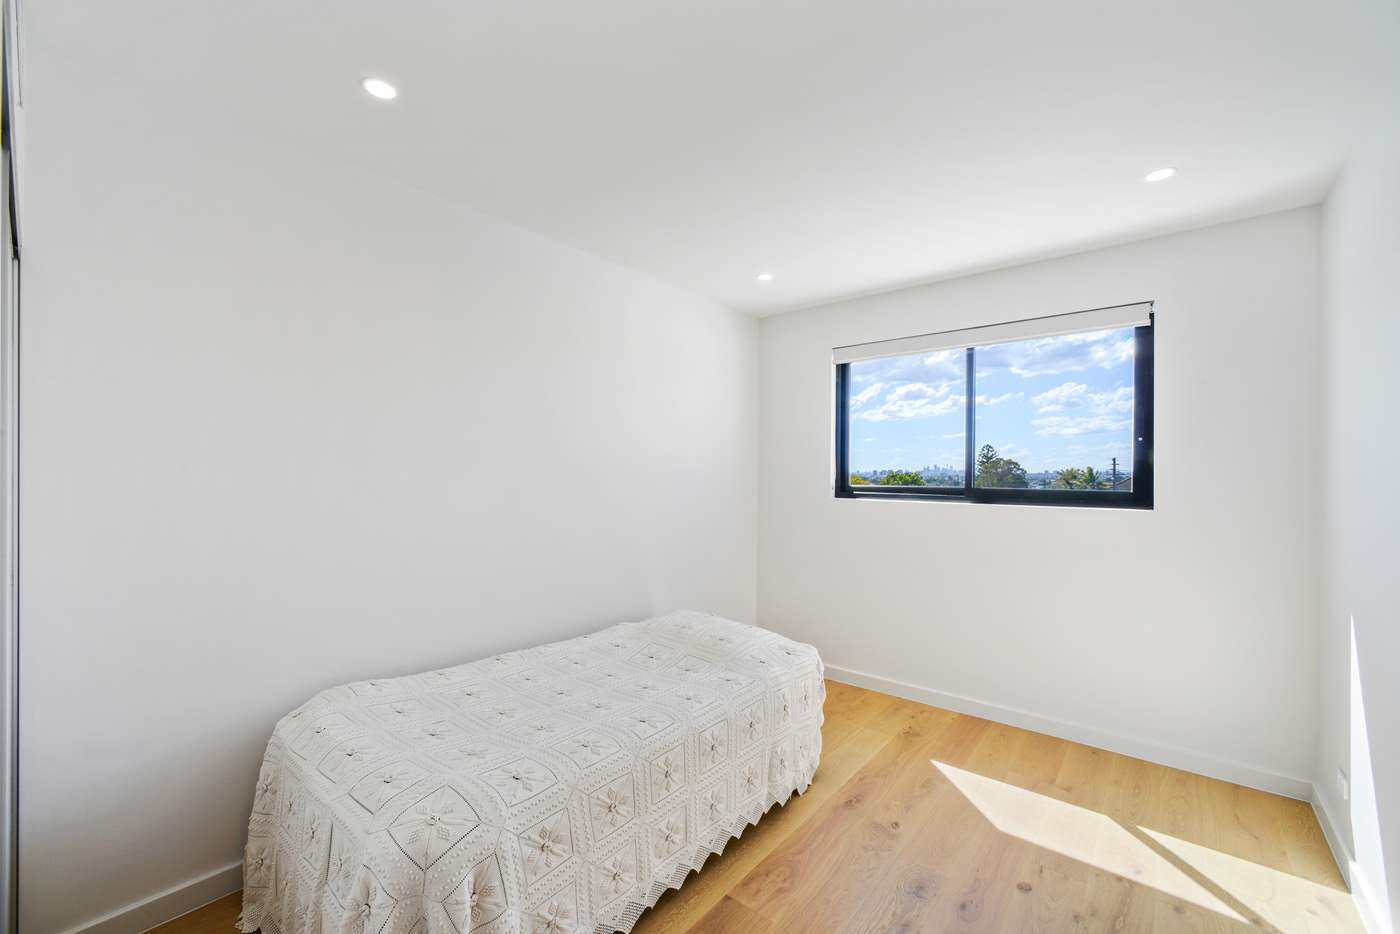 Sixth view of Homely house listing, 28A Reservoir Street, Little Bay NSW 2036